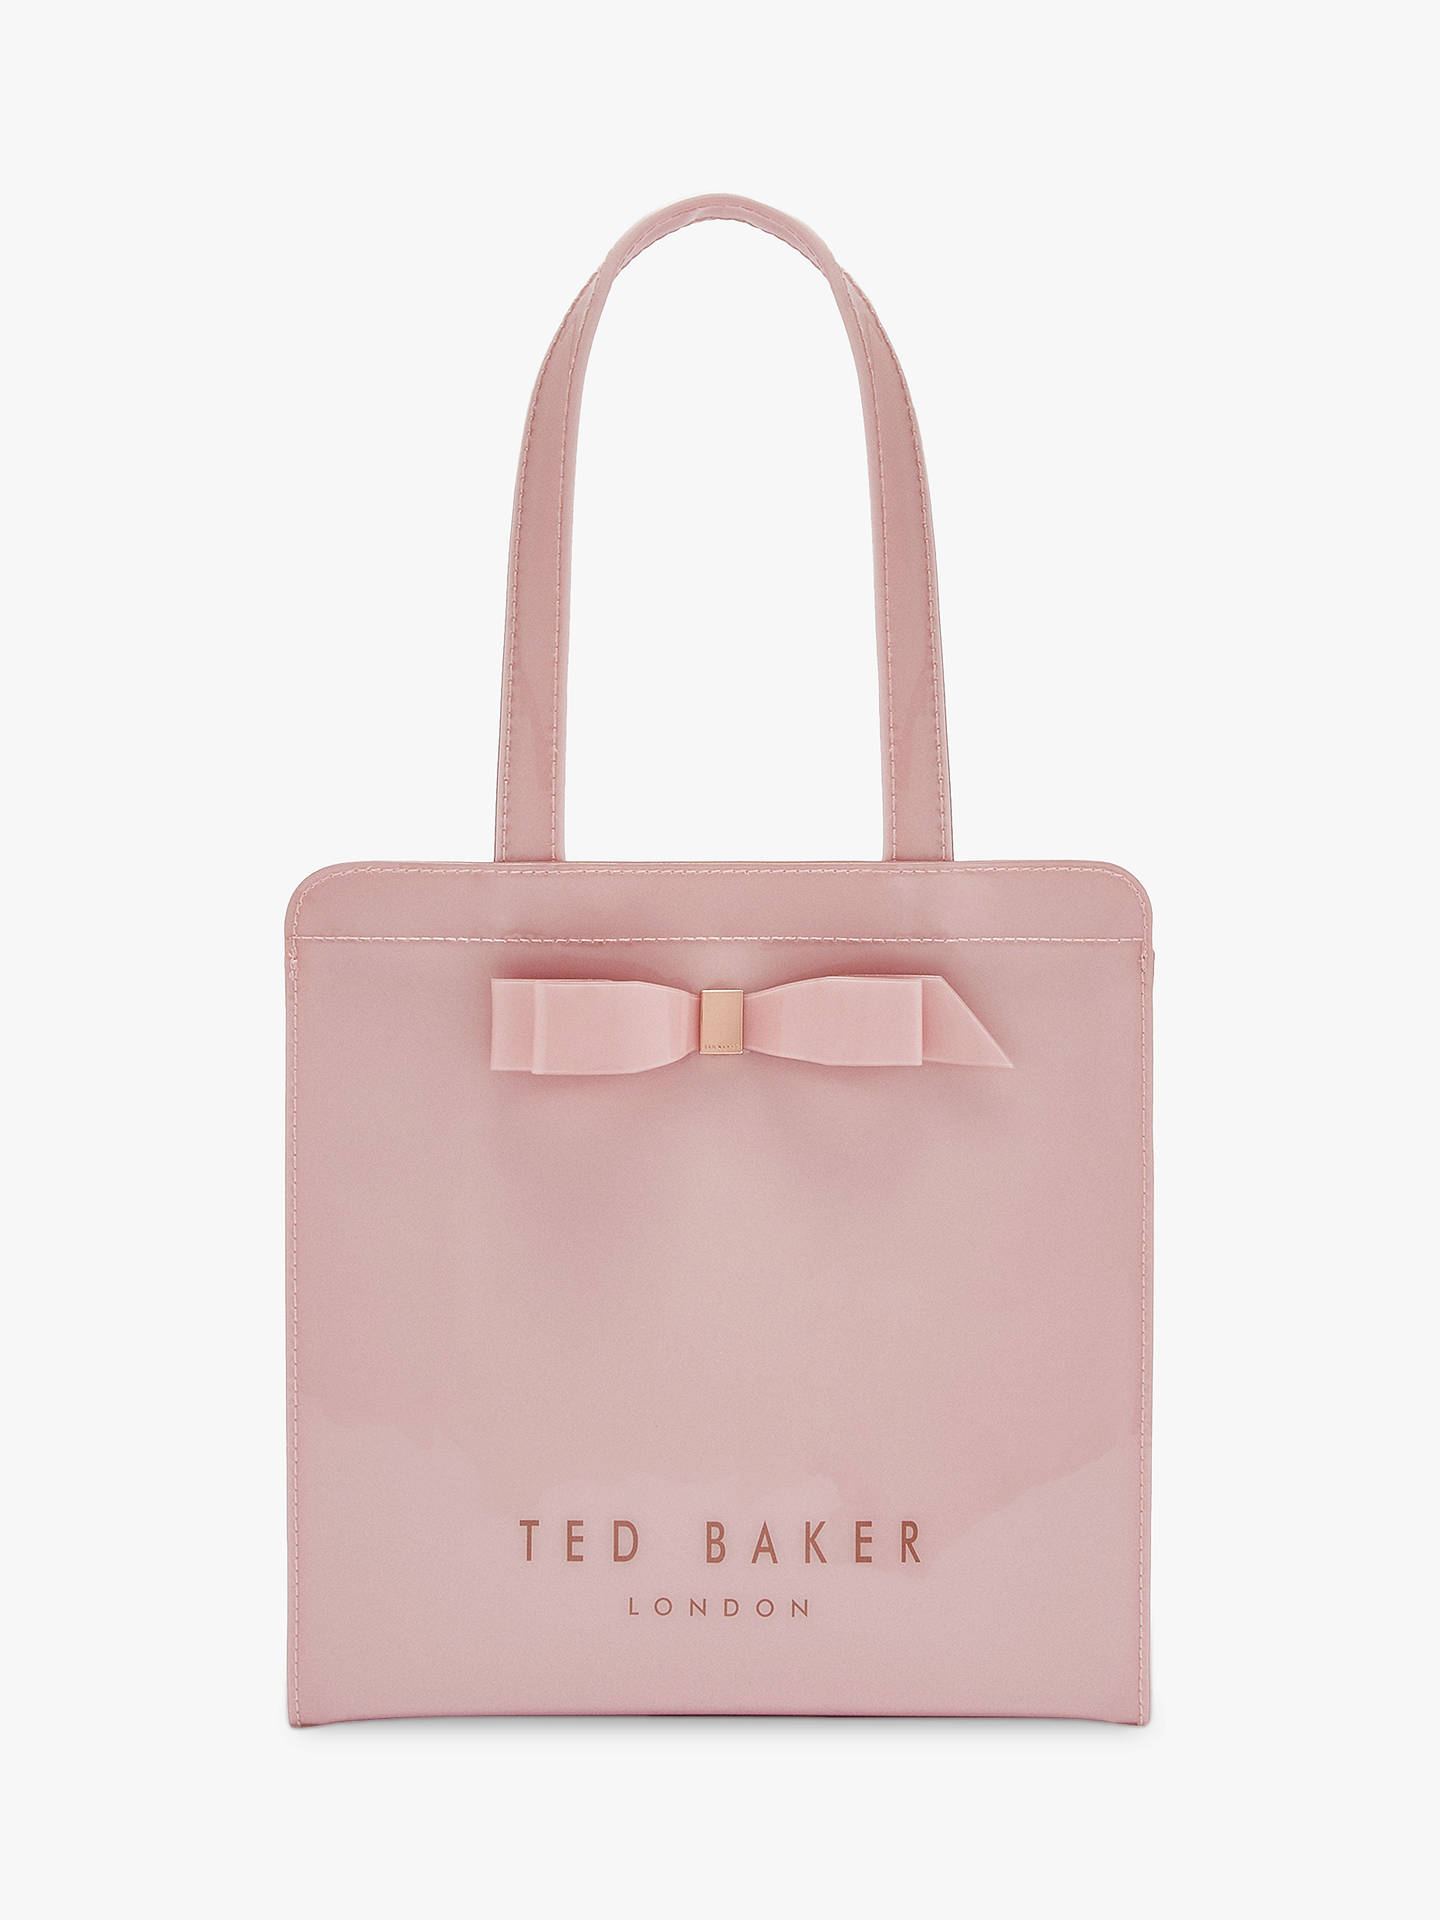 668b8d9237f Buy Ted Baker Arycon Small Icon Shopper Bag, Light Pink Online at  johnlewis.com ...